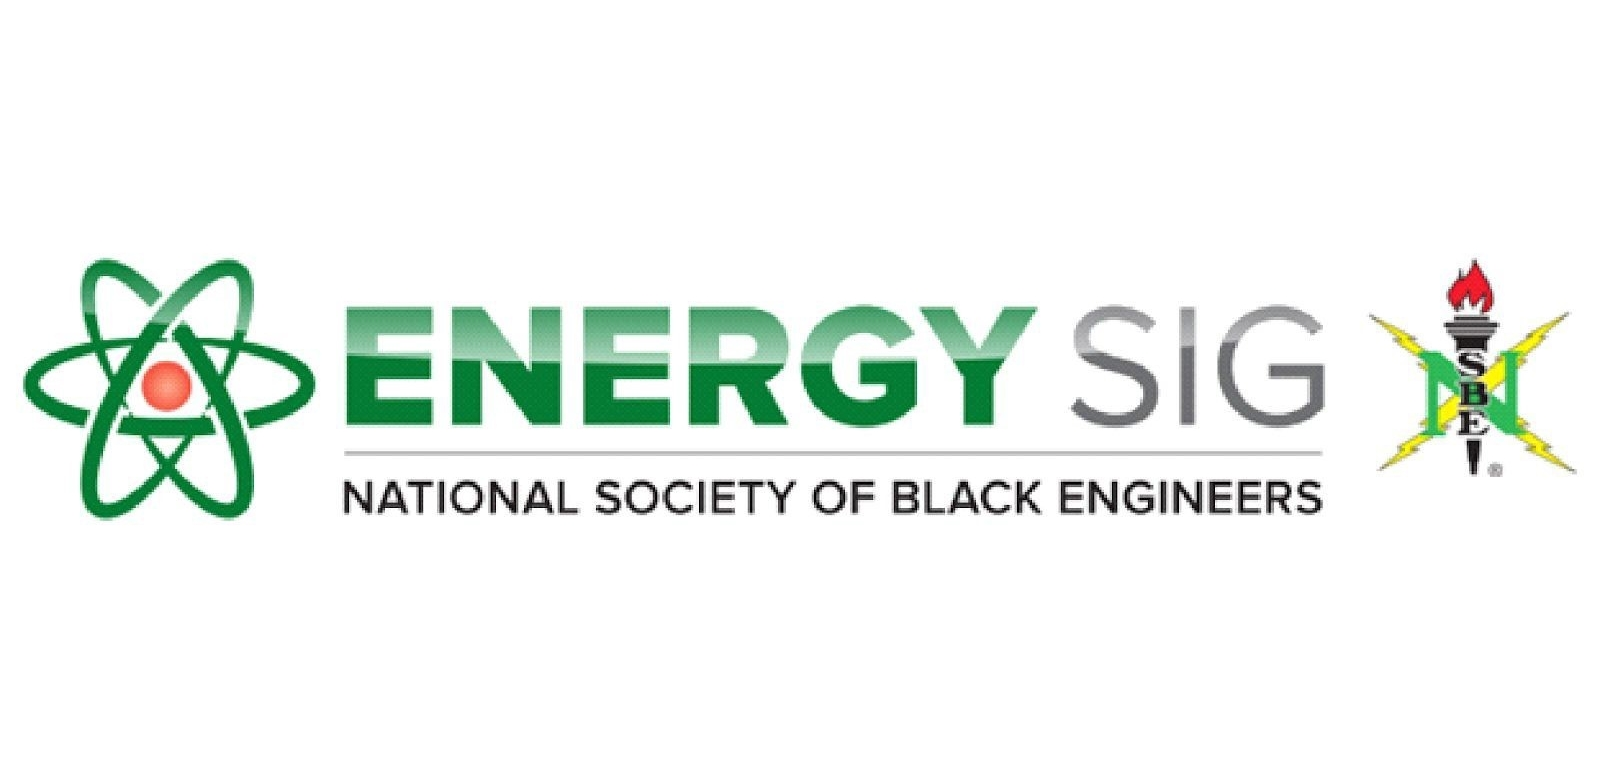 National Society of Black Engineers logo.